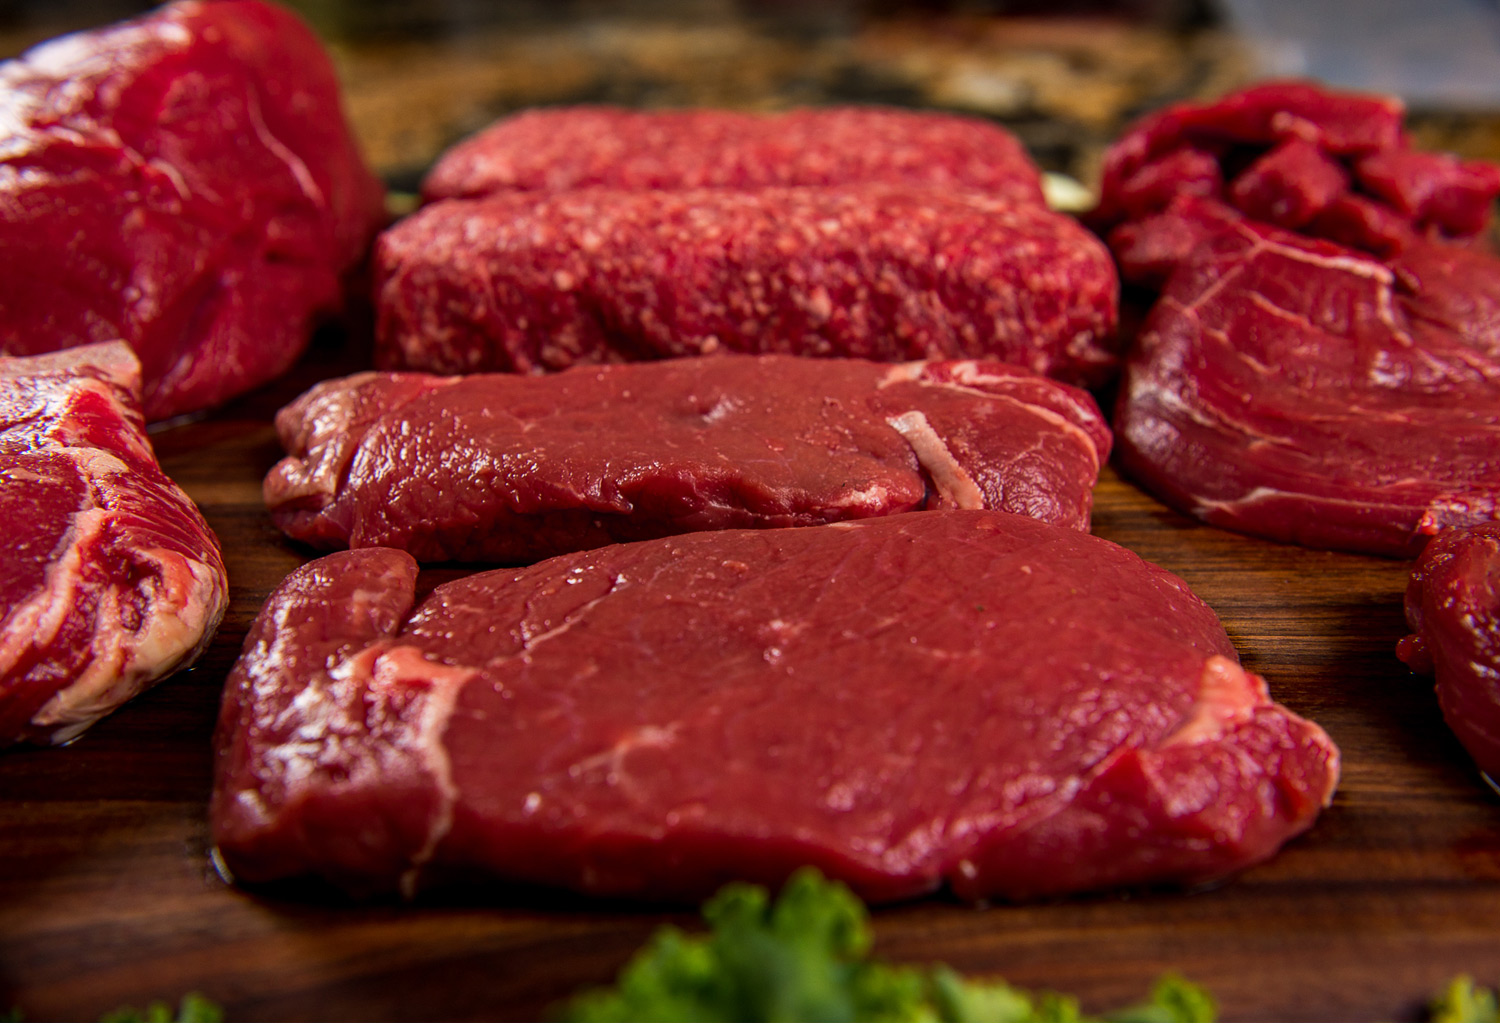 River Watch Beef – Premium Grass-Fed Beef, Sirloin and Hamburger